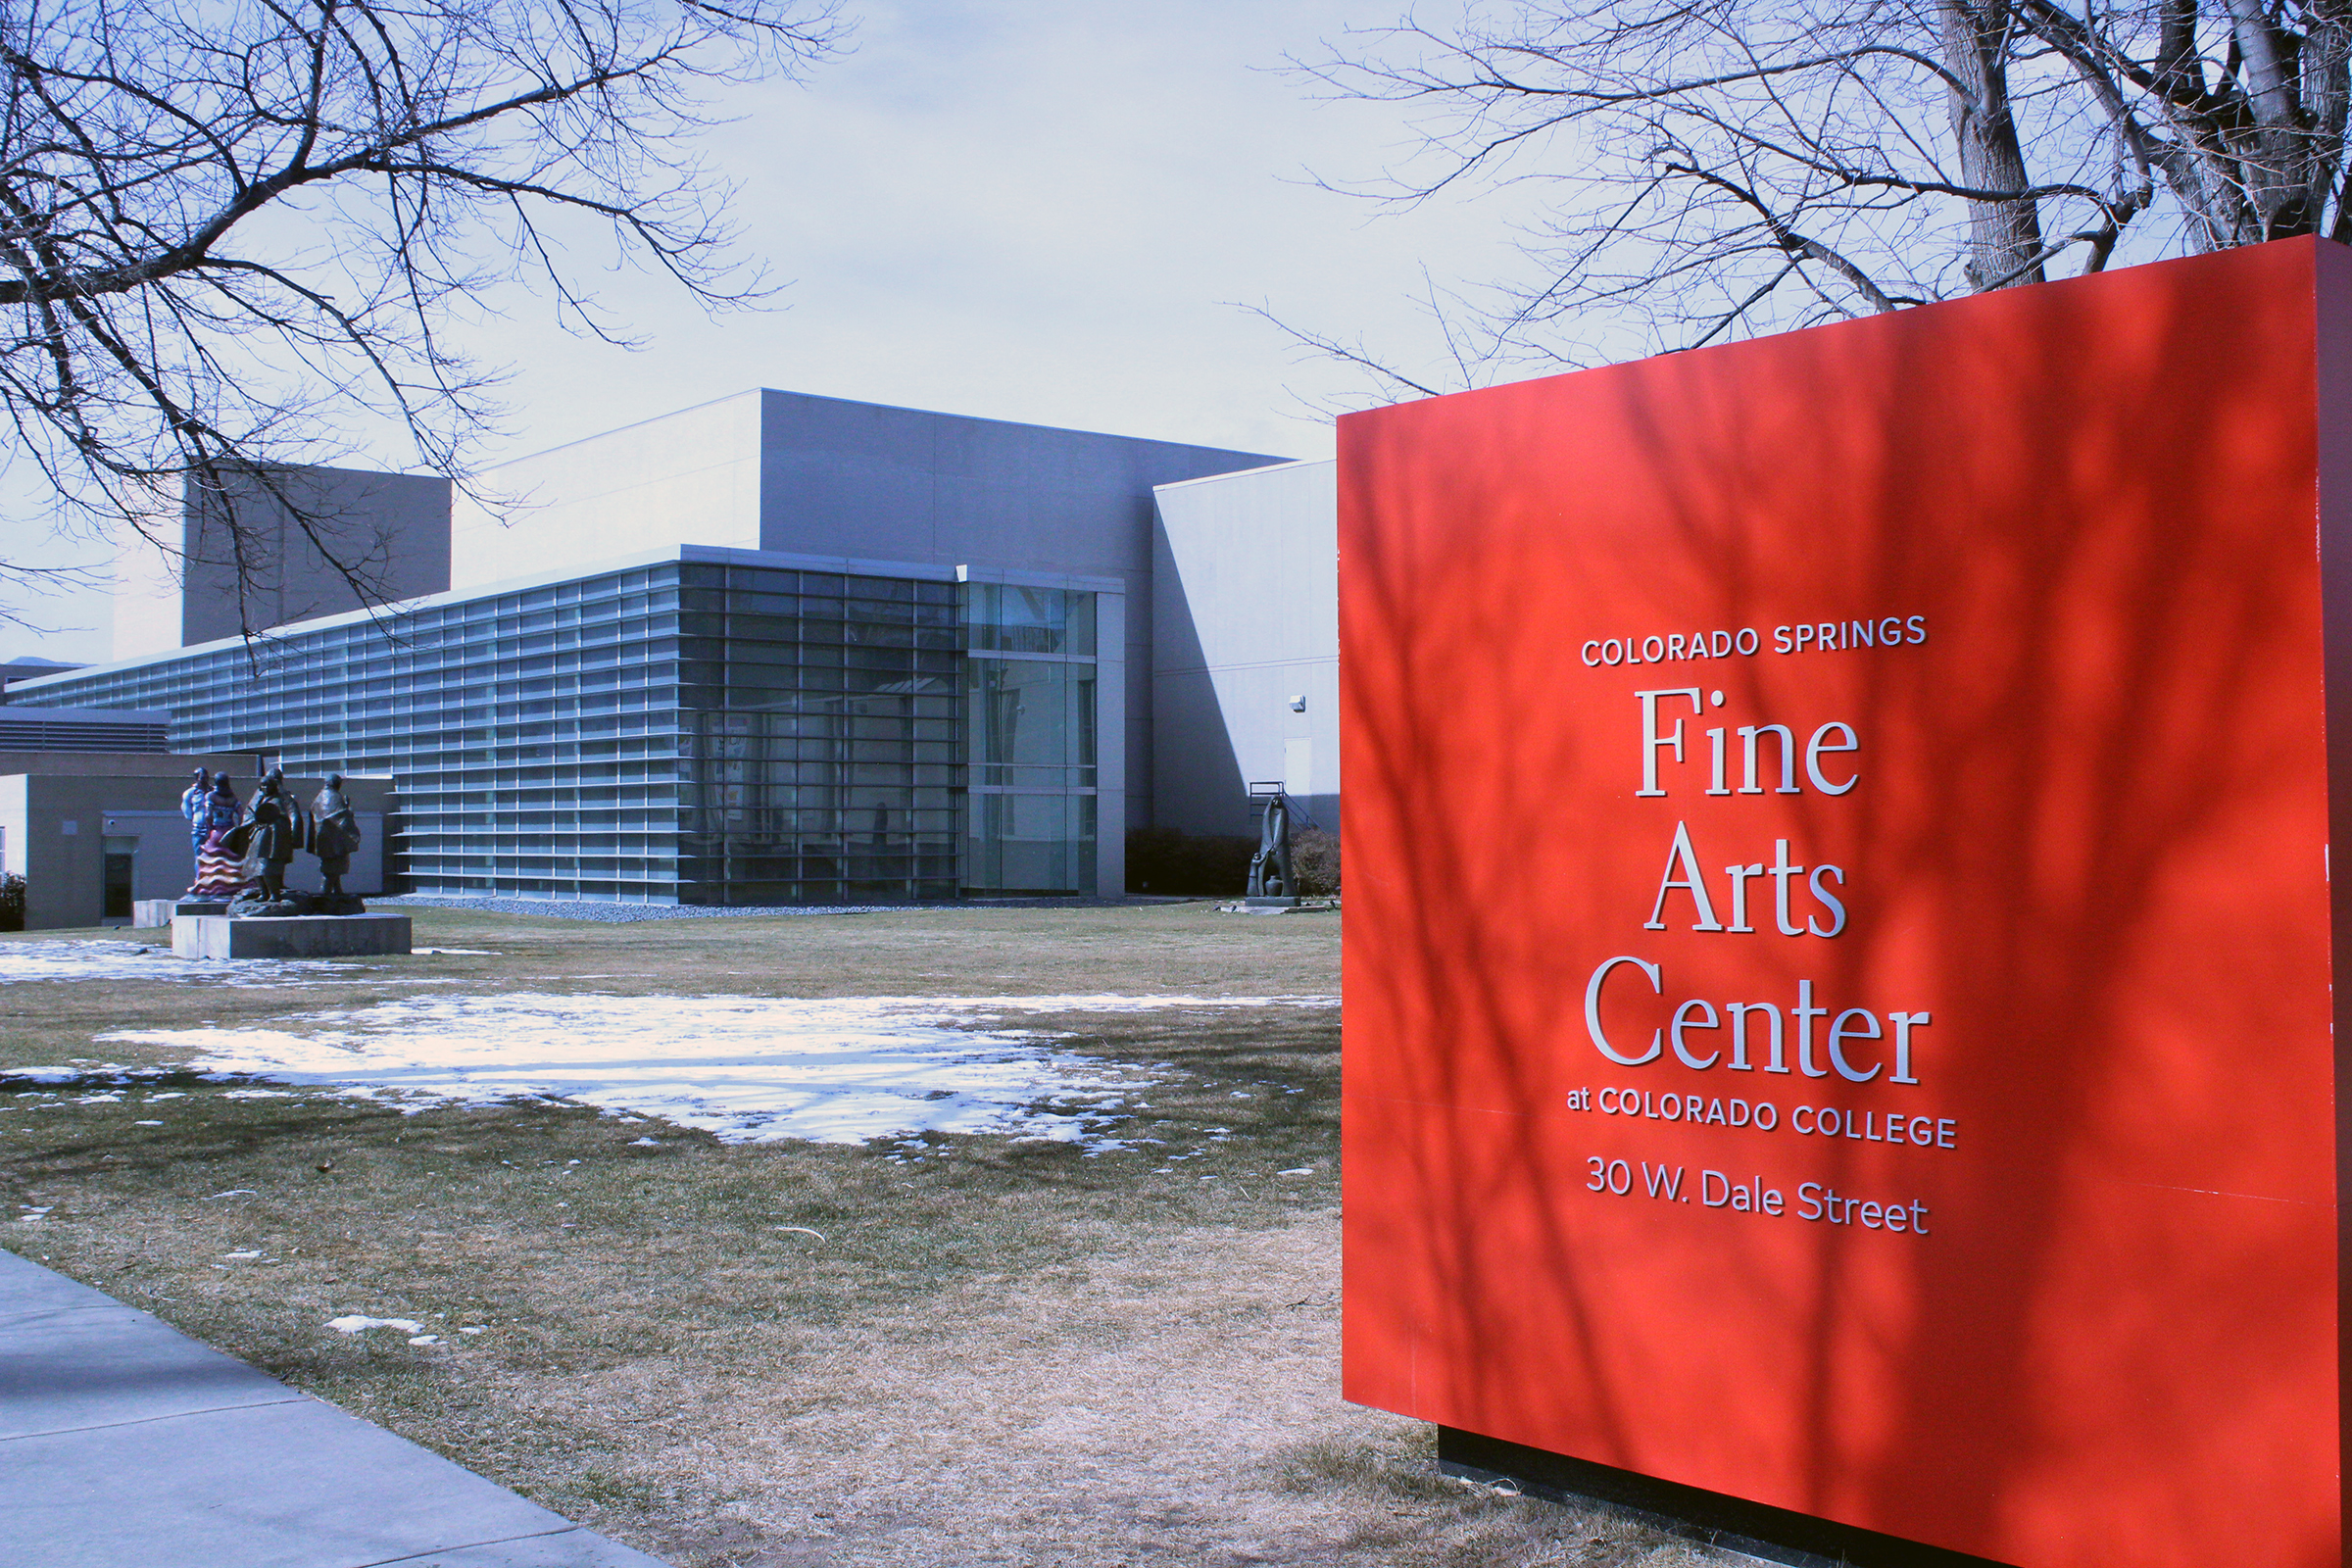 The Fine Arts Center at Colorado College turns 100 years old this year.